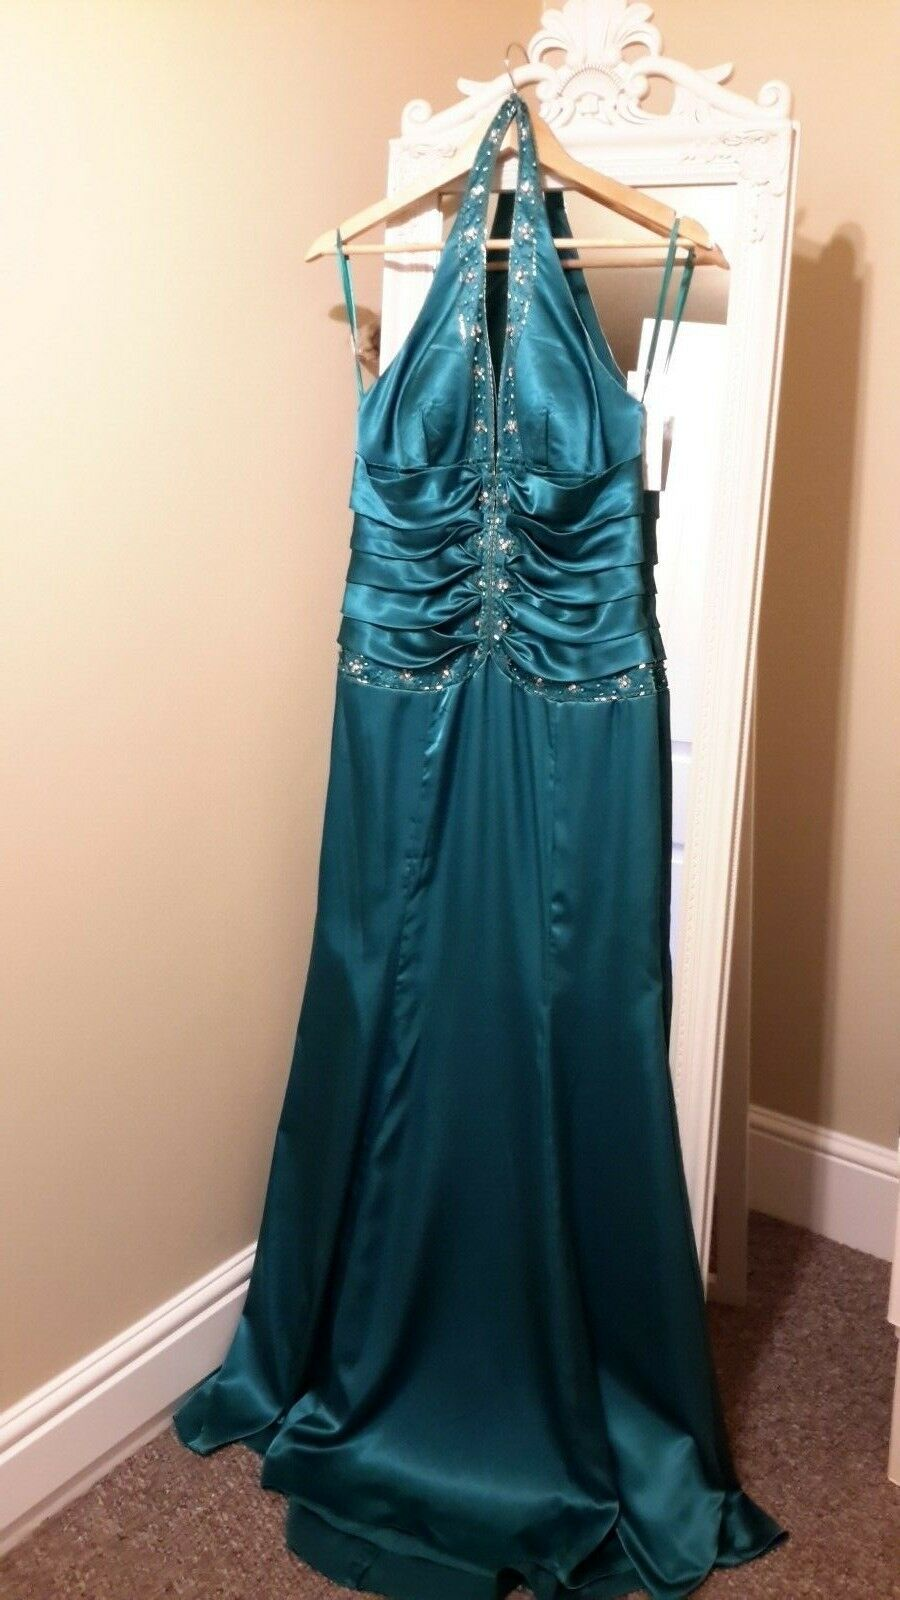 Teal Halter Neck Dress with Beautiful Beading. New with tags on size 10